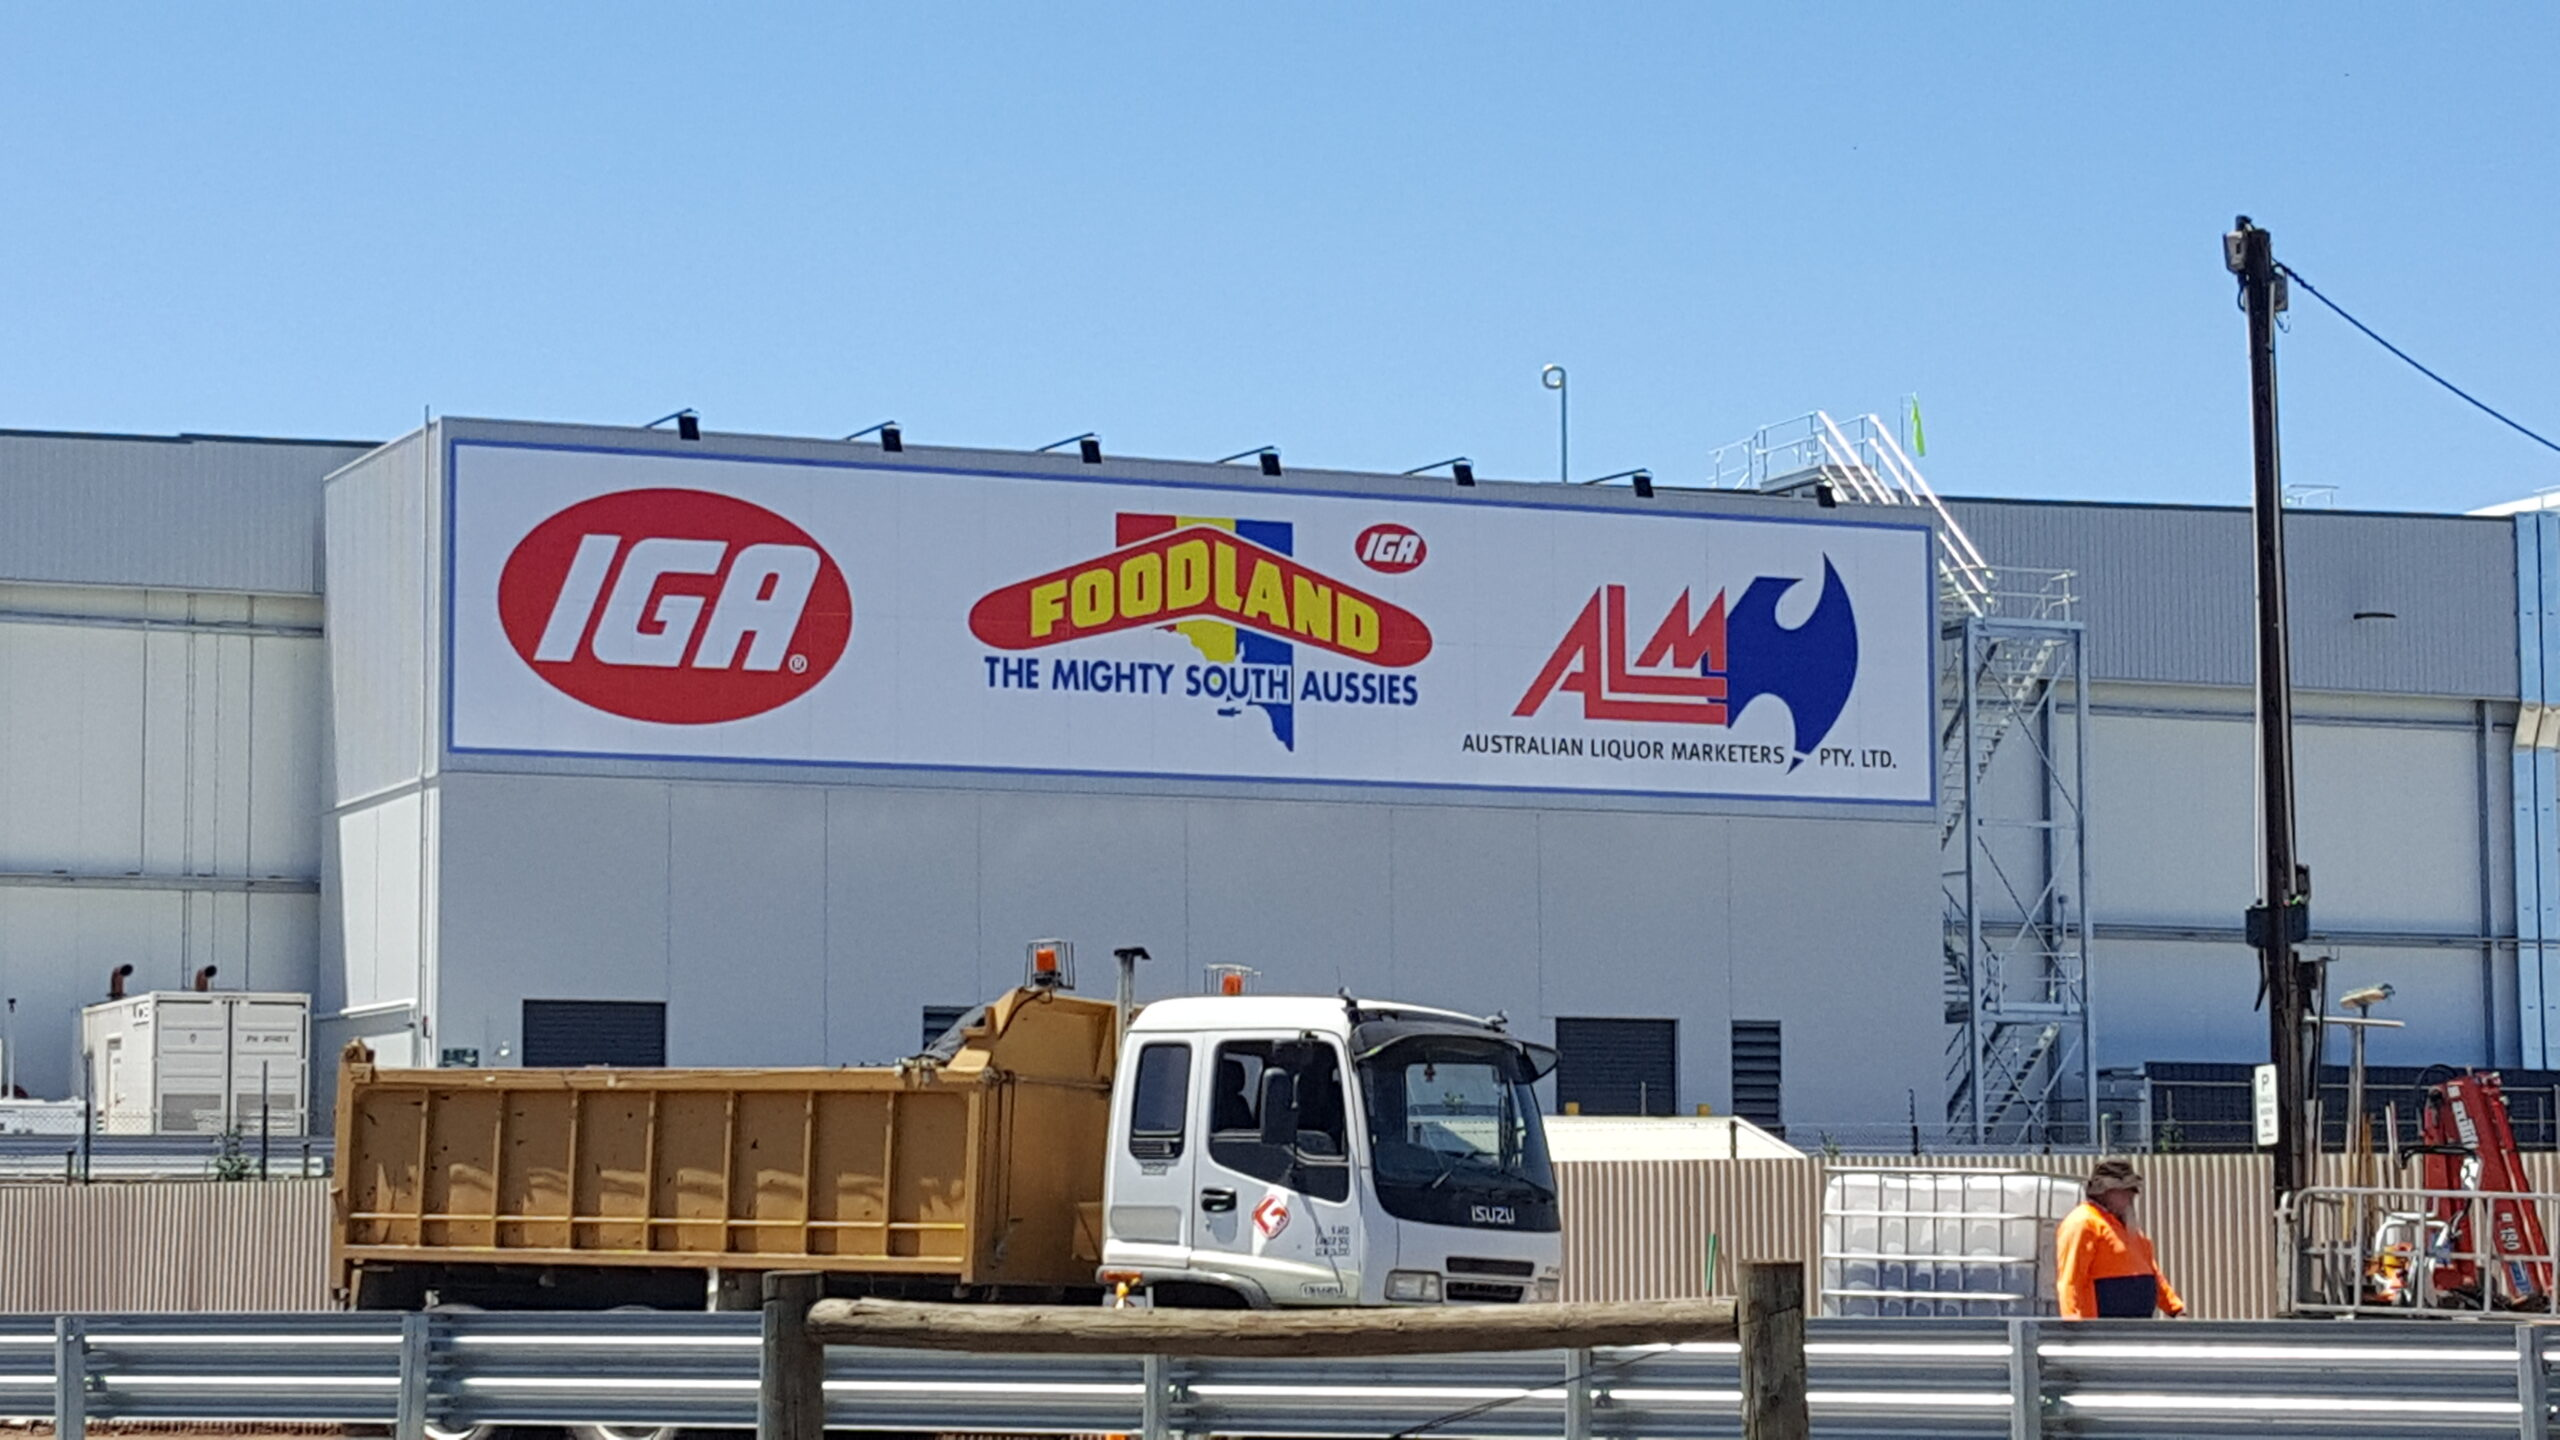 large format outdoor business sign on building fascia in Adelaide